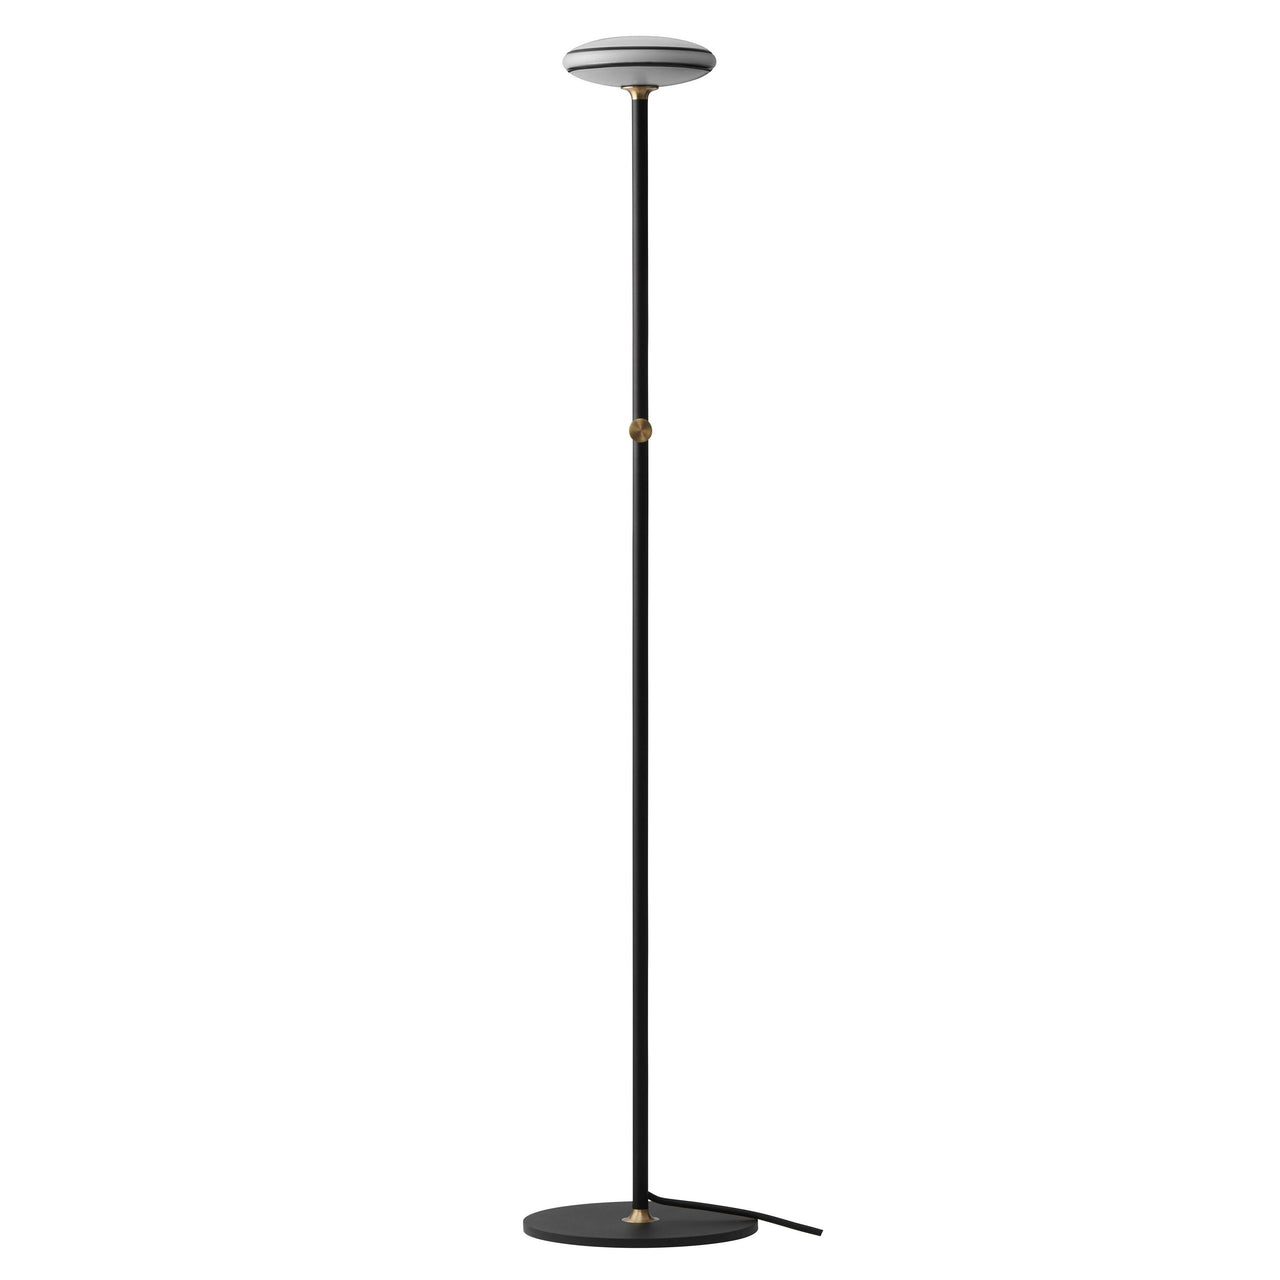 ØS1 Floor Lamp: Black + Black + Without Node